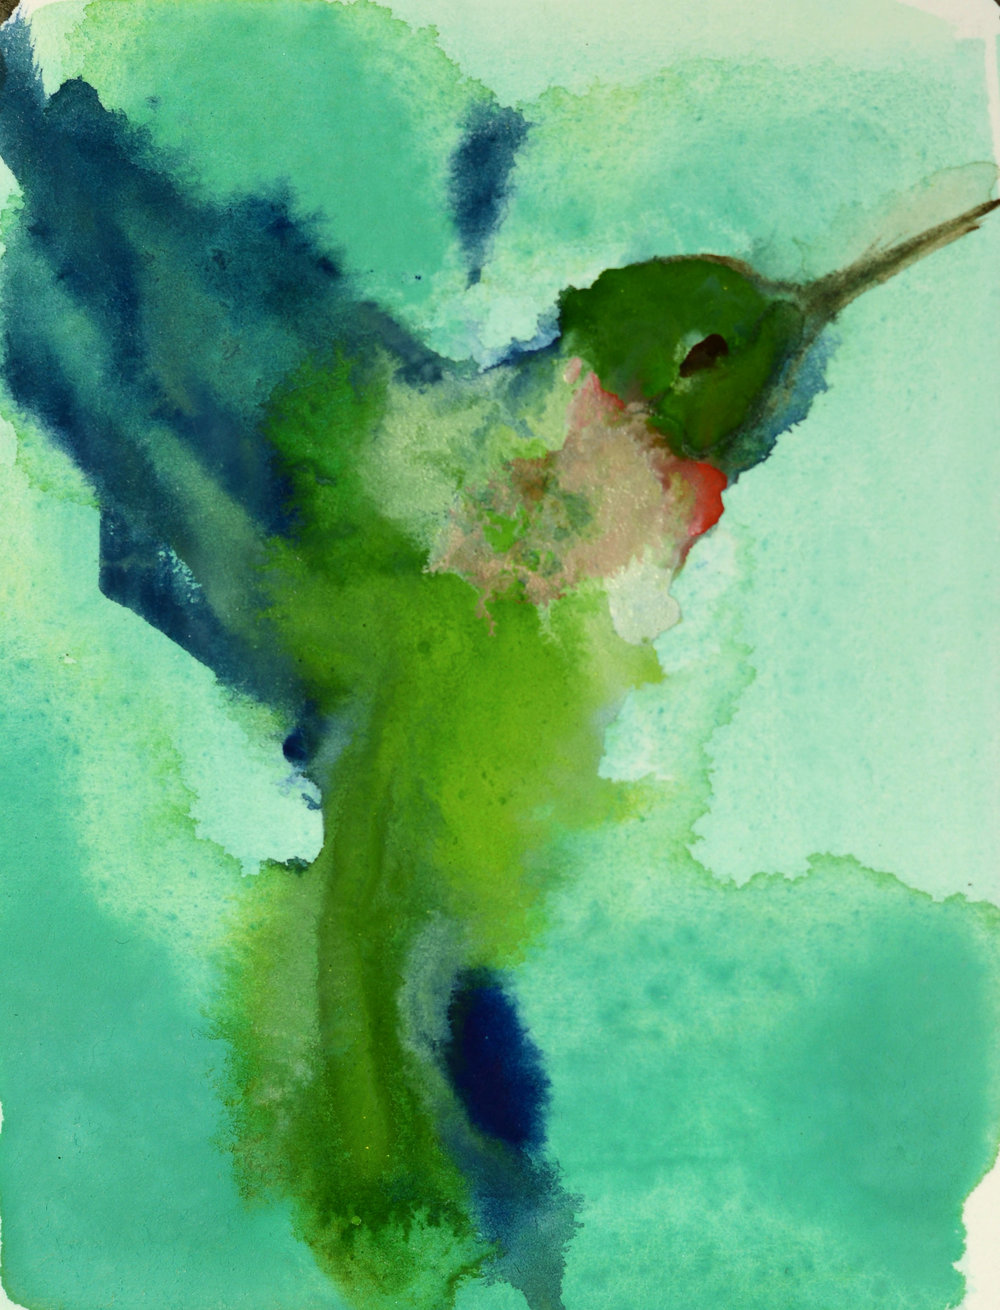 hummingbird no. 2_4x3 inset on 11x7.5 paper.jpg